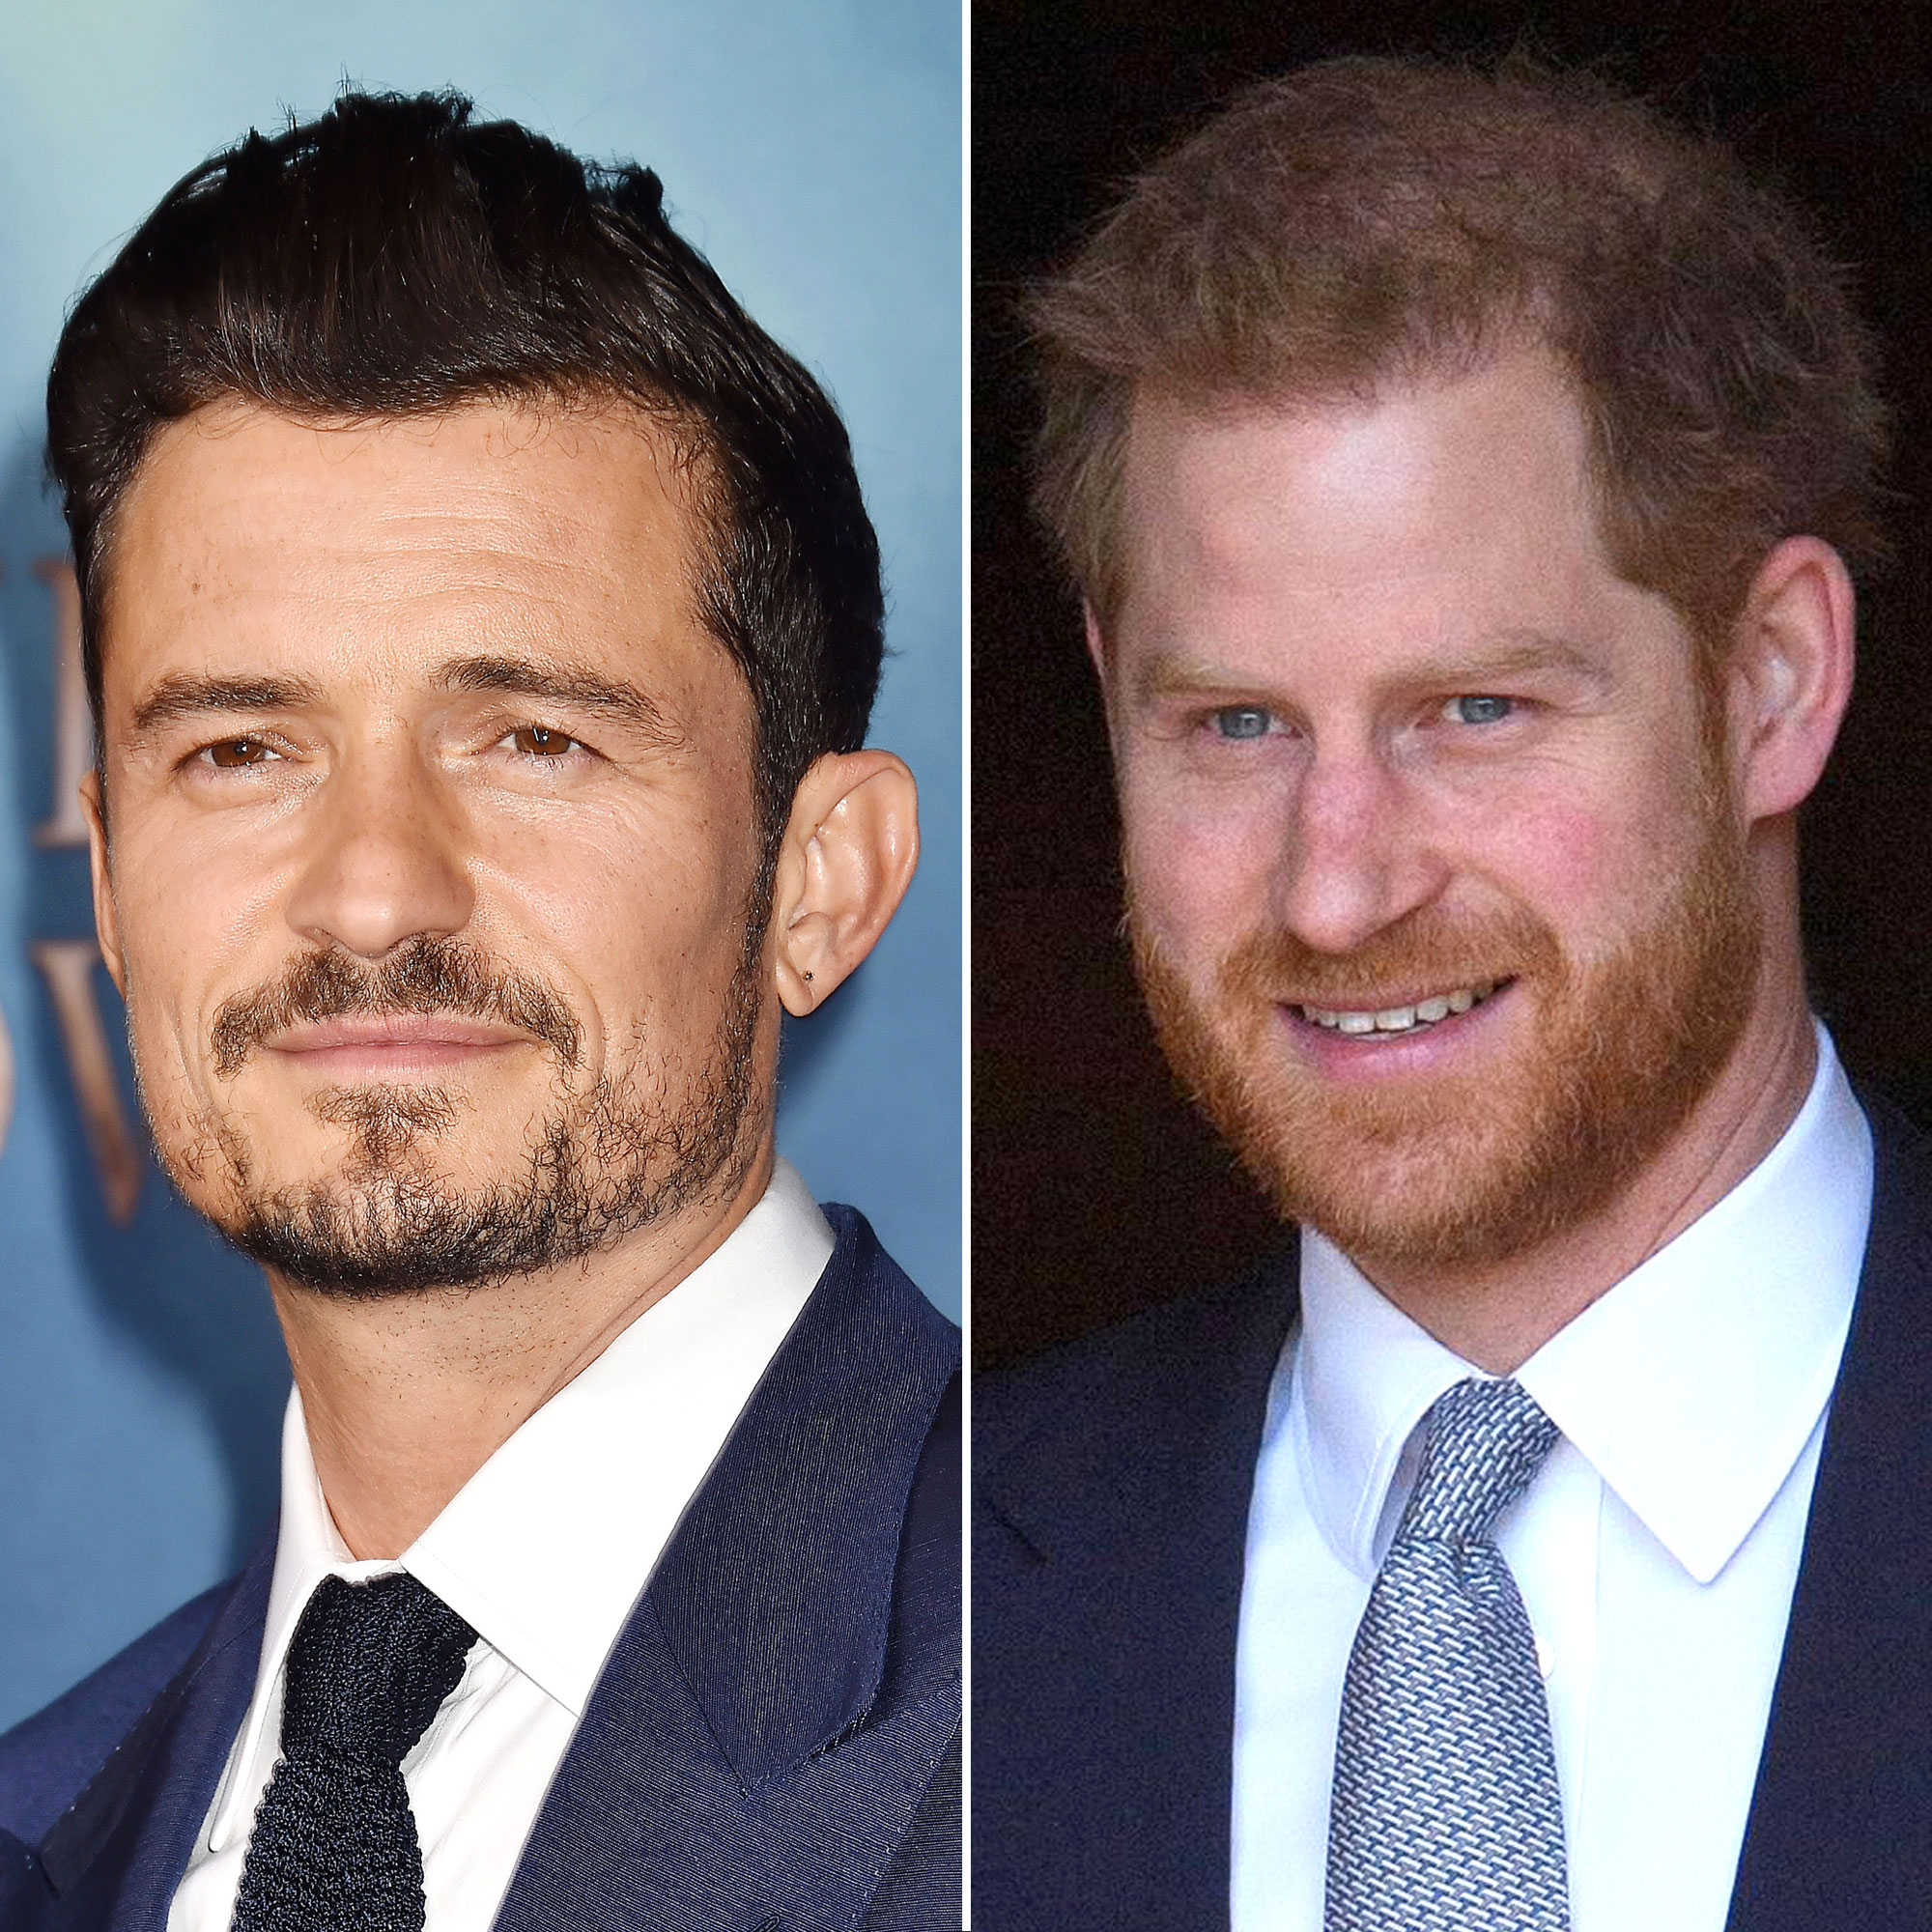 Orlando Bloom To Voice Prince Harry in The Prince